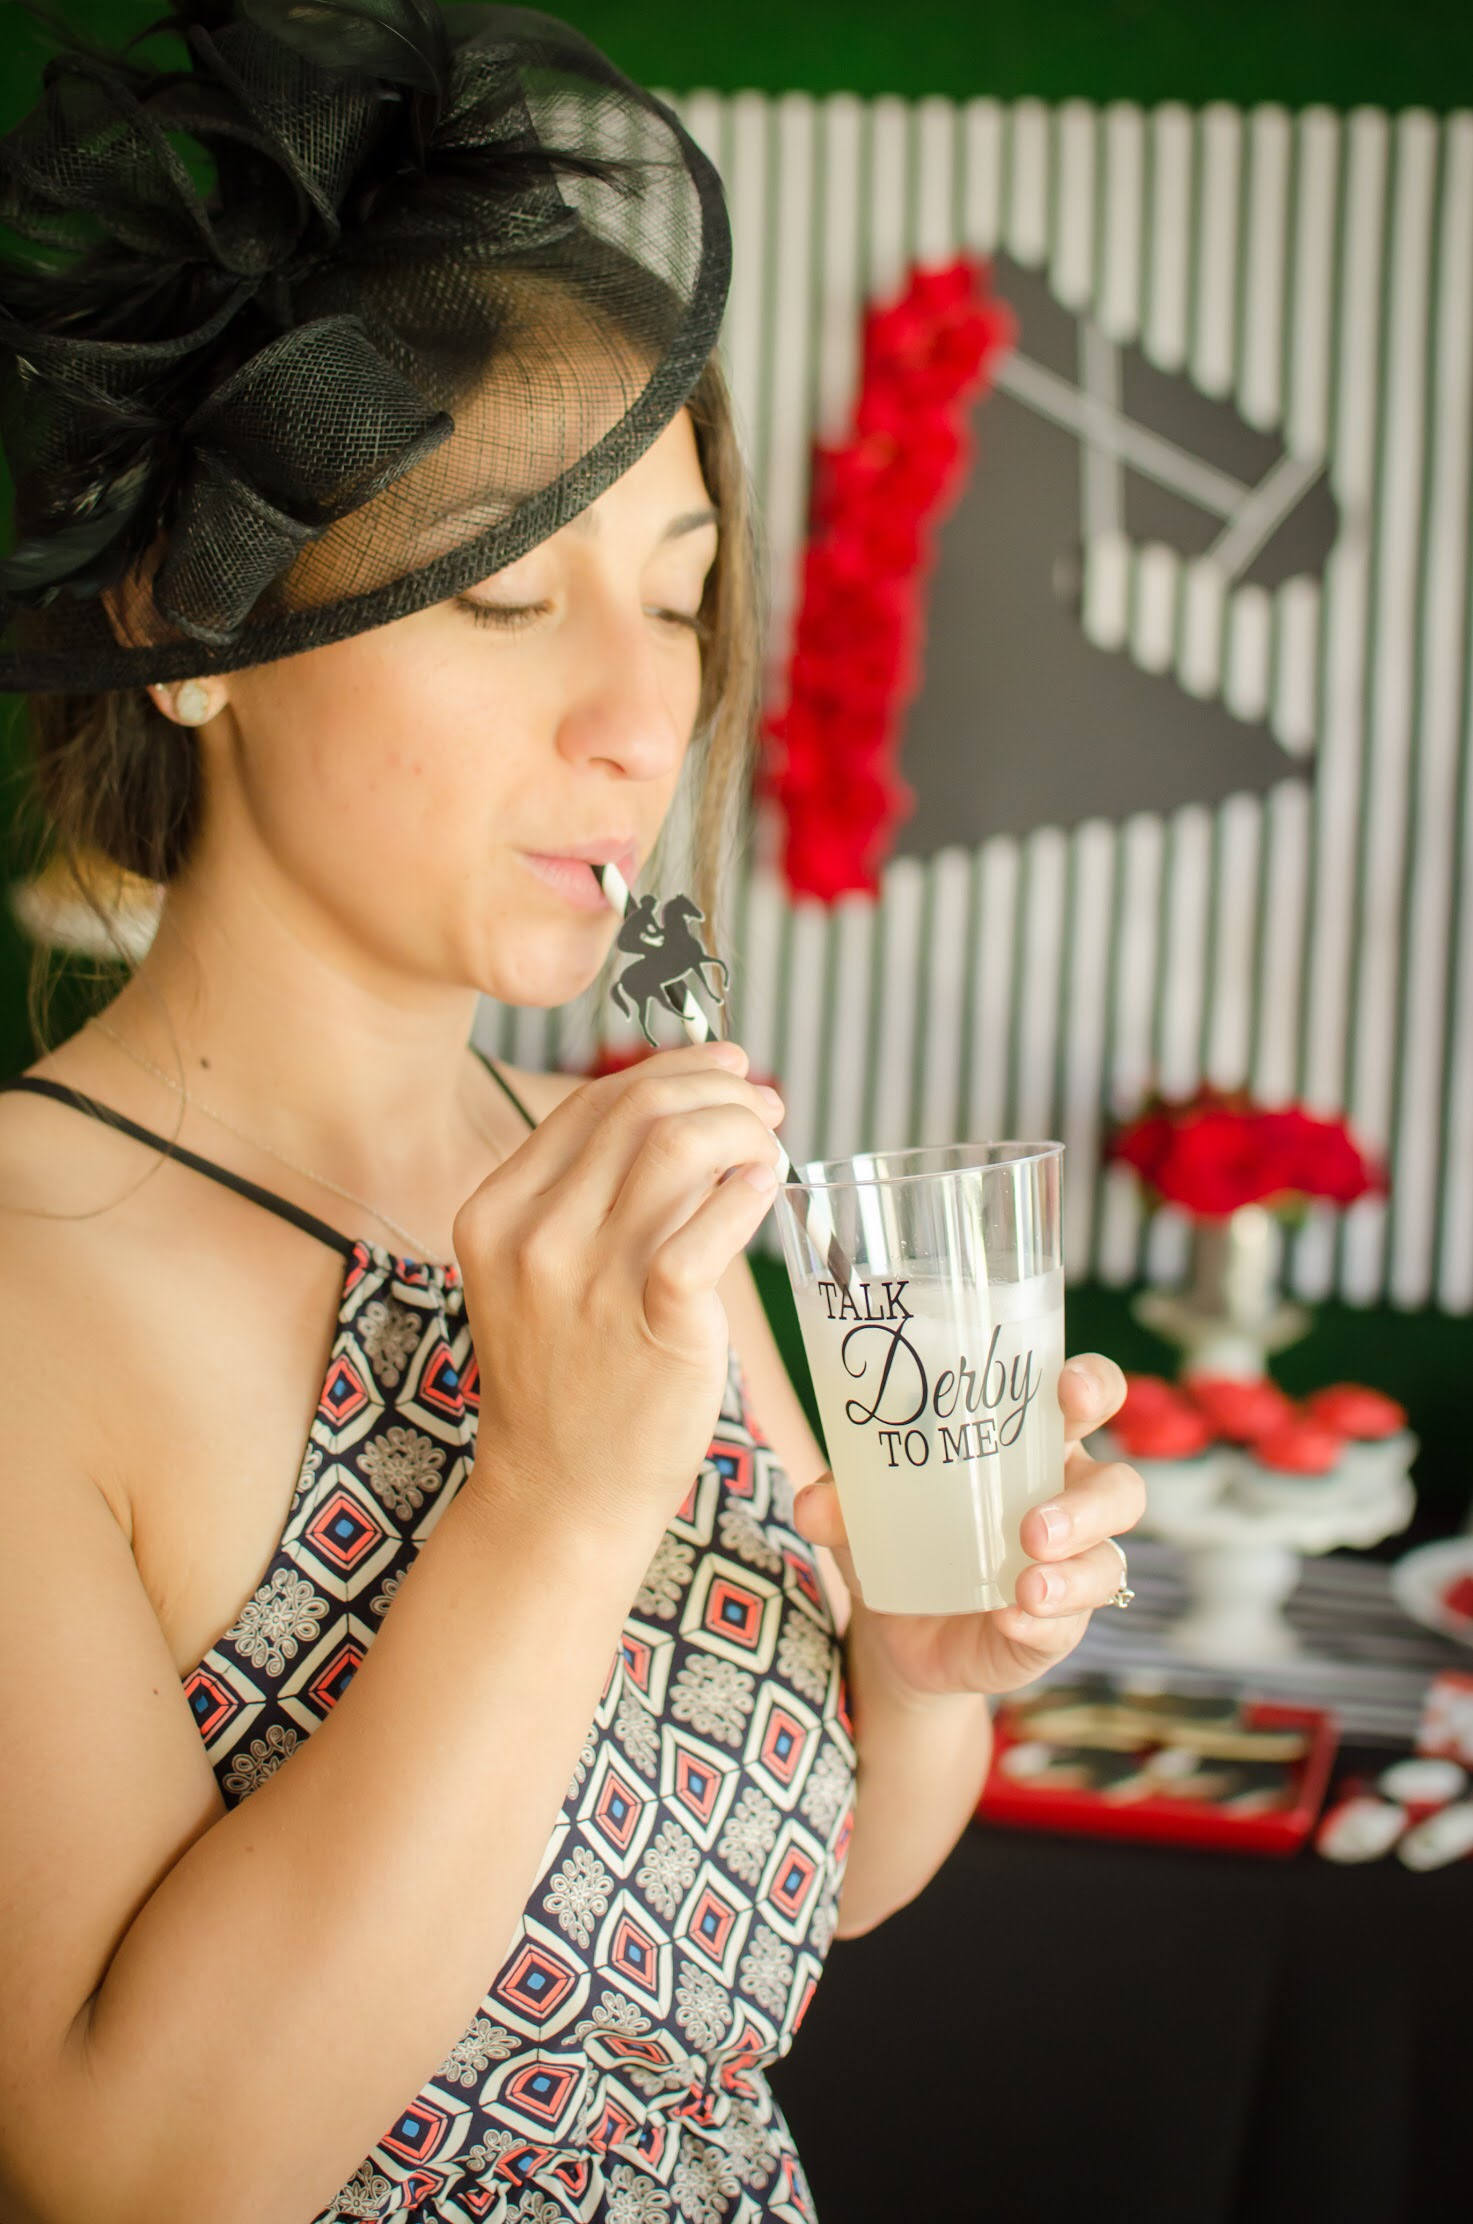 Red, black, and white Kentucky Derby Party ideas from Mint Event Design #kentuckyderbyparty #kentuckyderby #partyideas #derbyday #runfortheroses